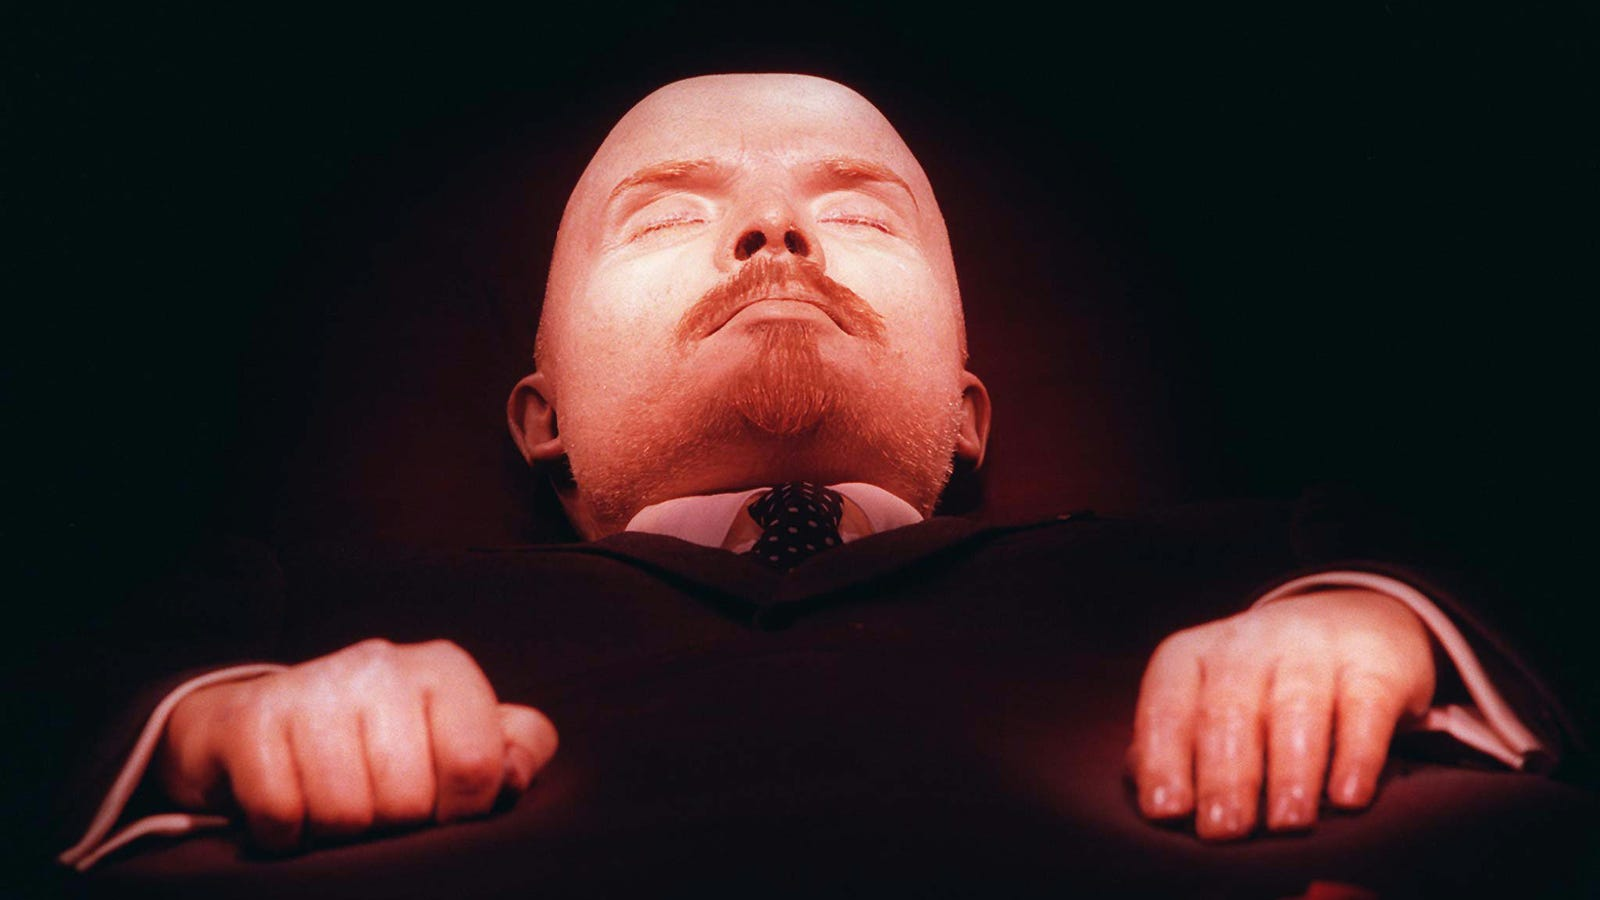 Dressing Up For the Reaper: How Embalming Makes the Dead Look Alive